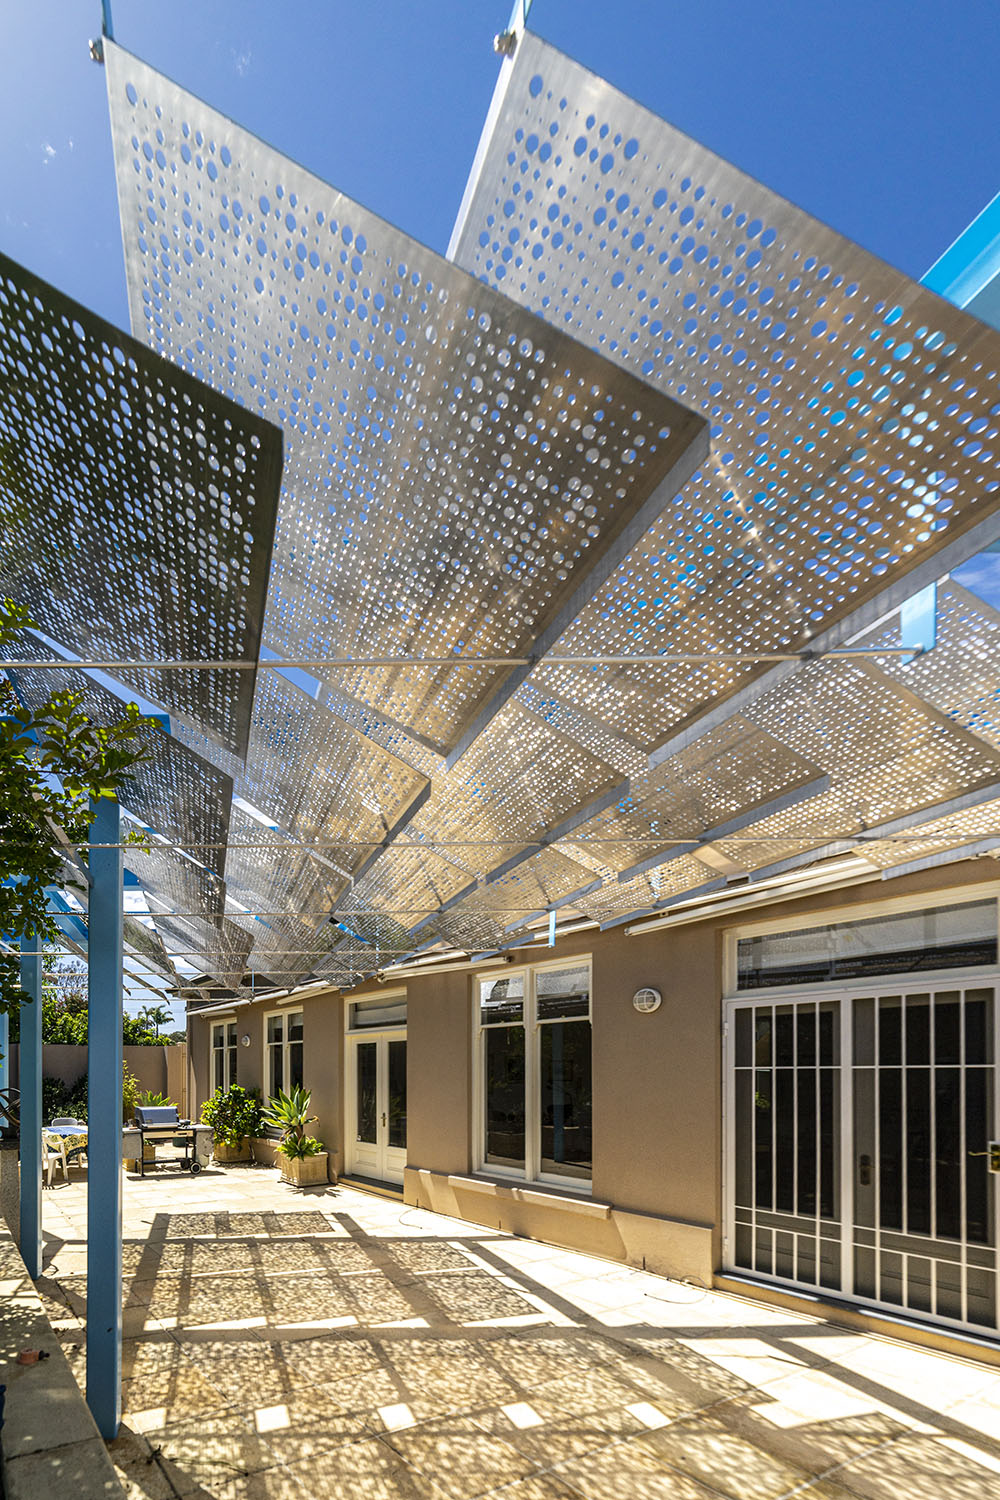 House, Canopy, Architecture, Sunlight, Shade, Sculptural, Form, perforated panels, Steel, Architectural, Structure. Outdoors, Verandah, Pergola, Adelaide